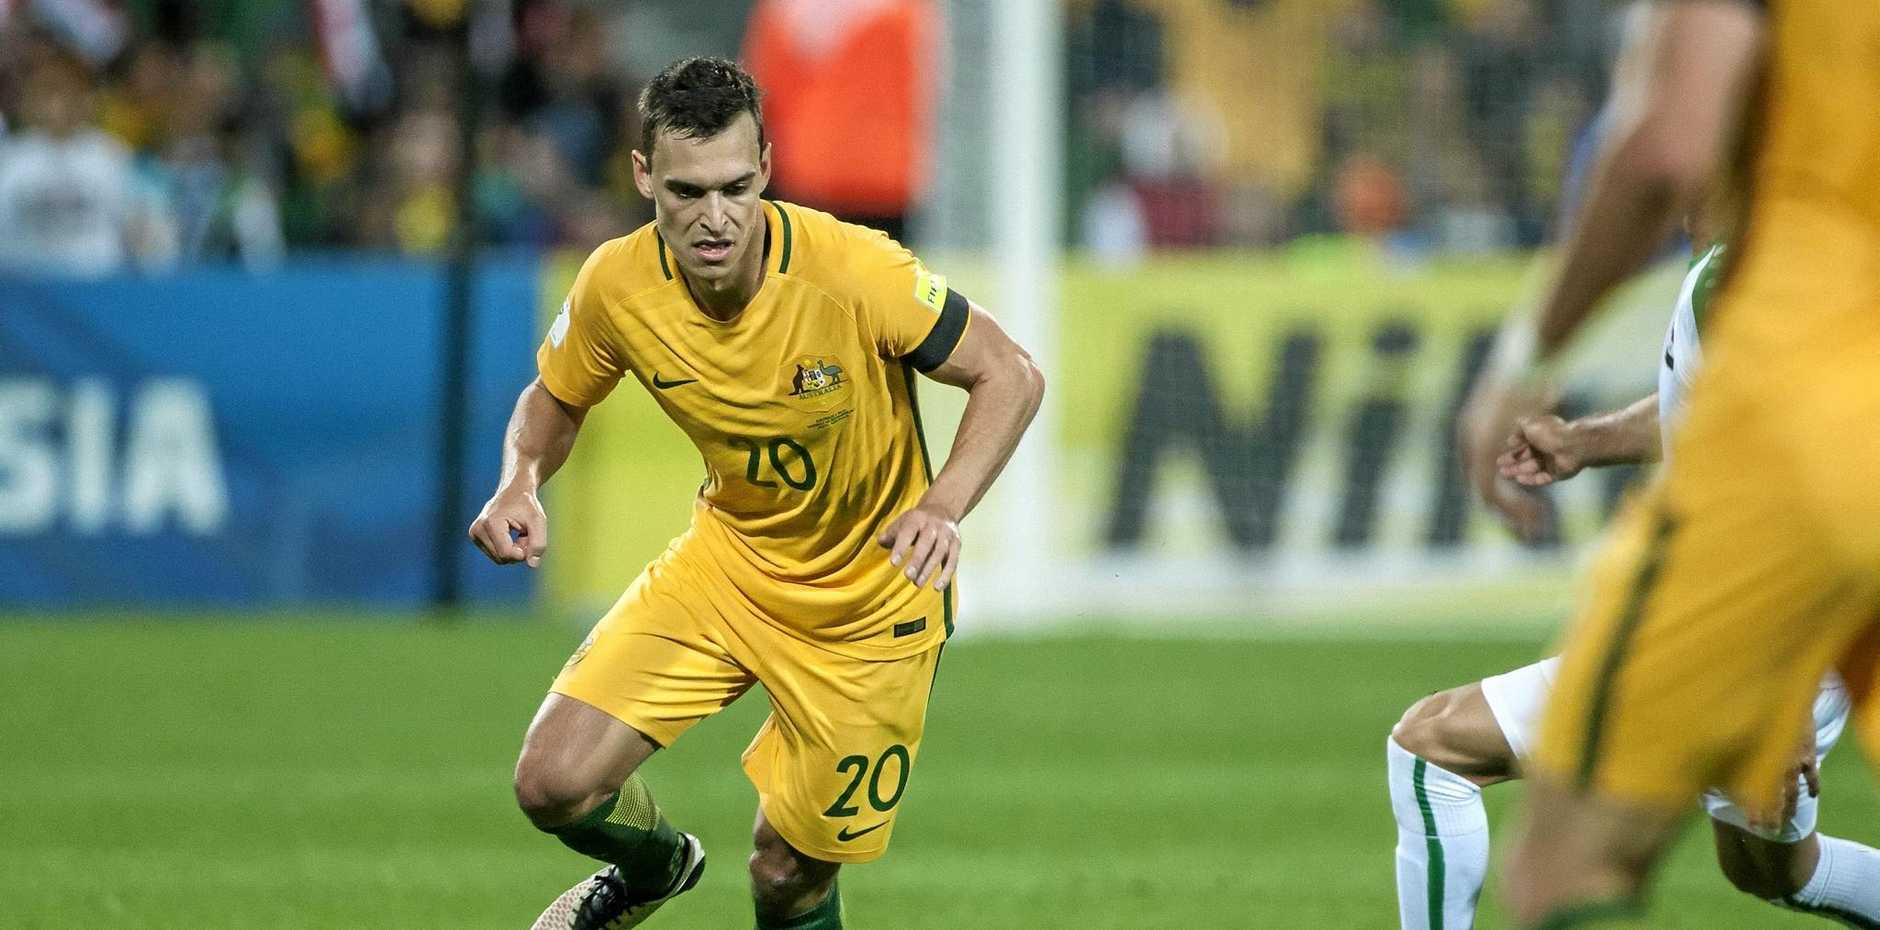 Trent Sainsbury is hoping to get a Socceroos call-up for Thursday's World Cup qualifier in Tehran against Iraq.